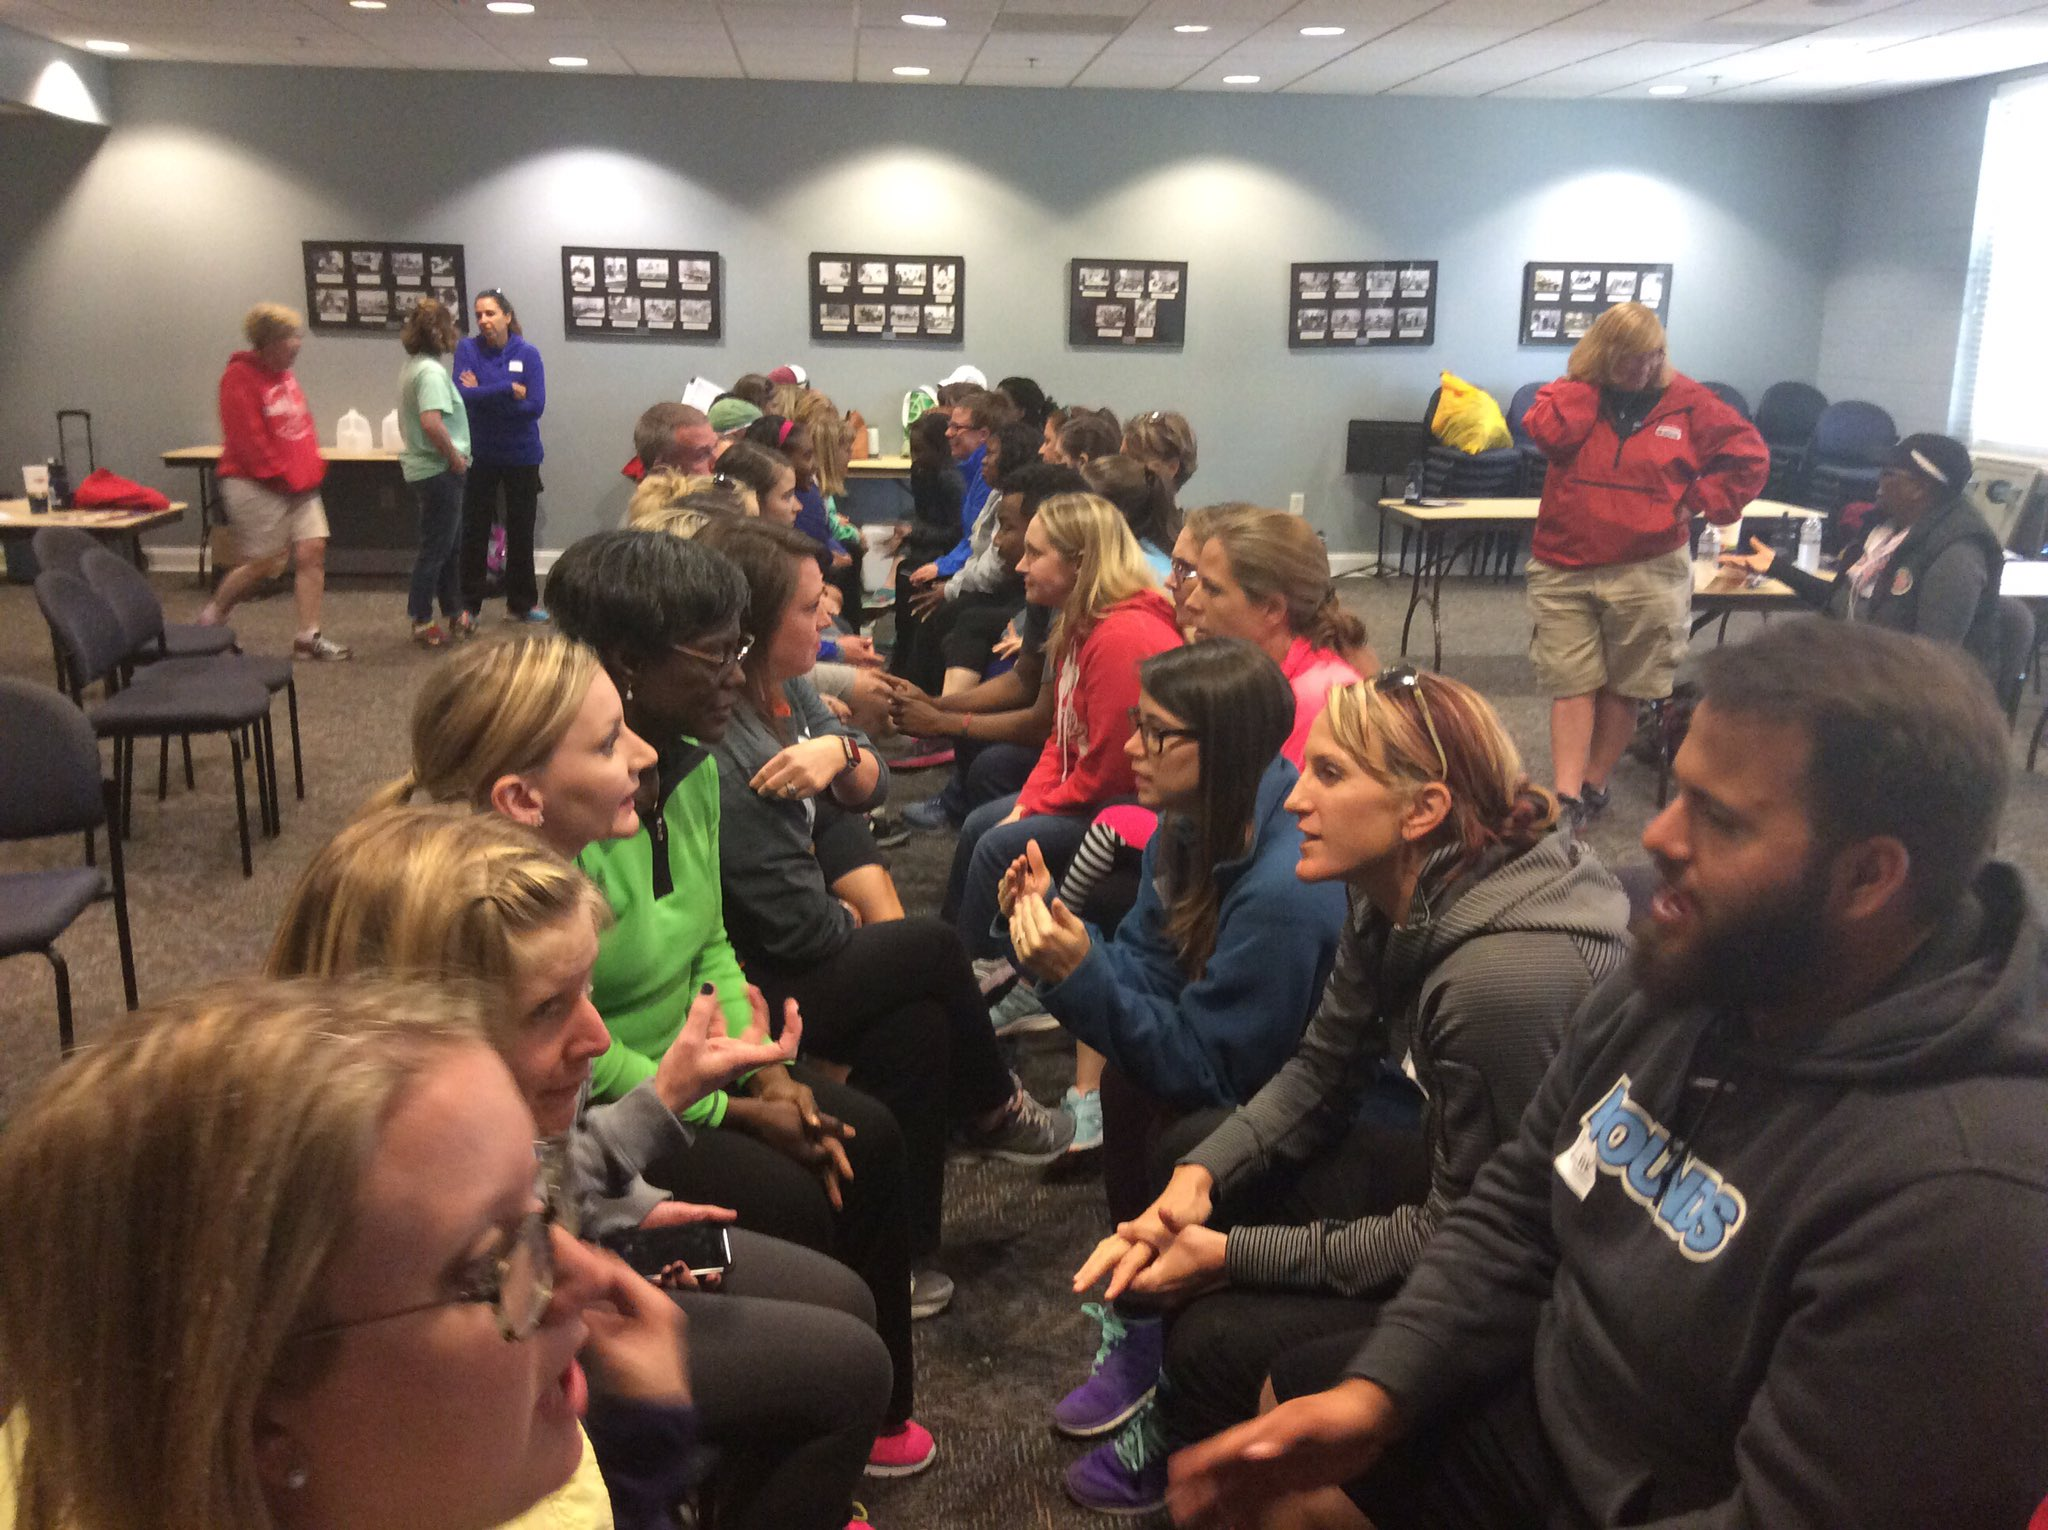 Can you say wagon wheel? What movement strategies work in your classroom?#MiM #cobbia https://t.co/OWYOvoPTuD